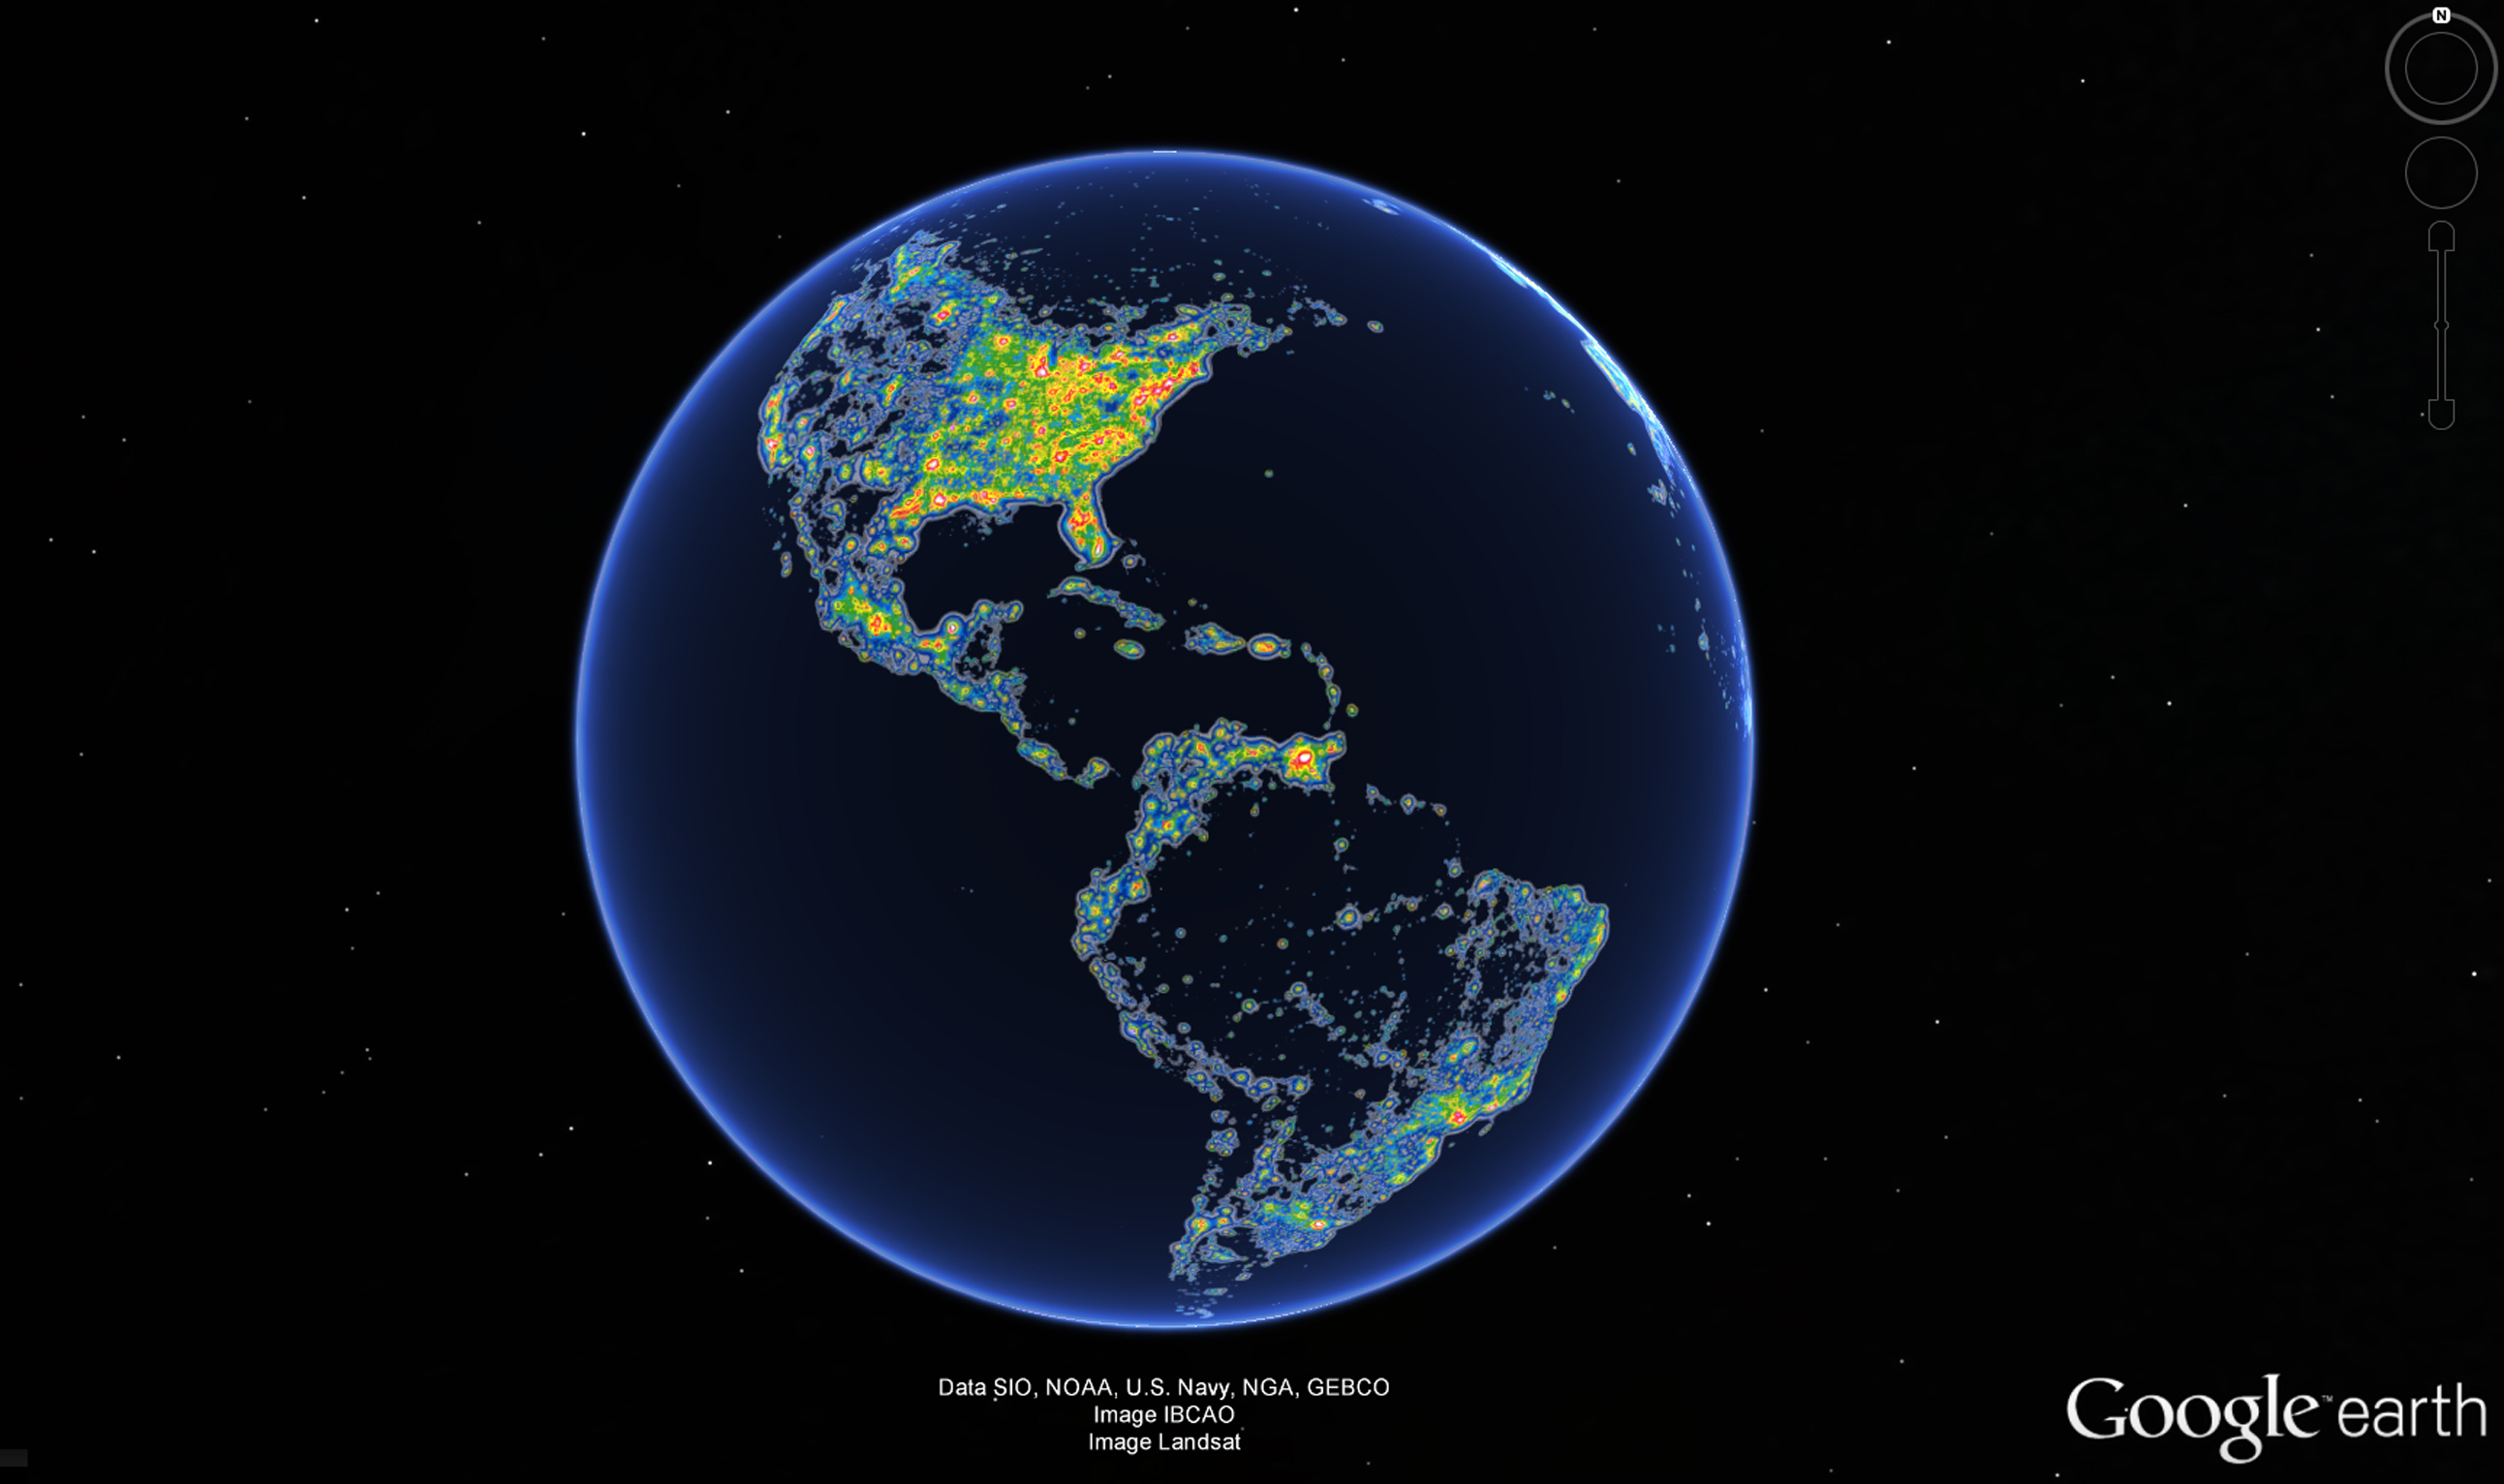 The Americas in the New World Atlas of Artificial Sky Brightness, as seen in Google Earth. Source: Science